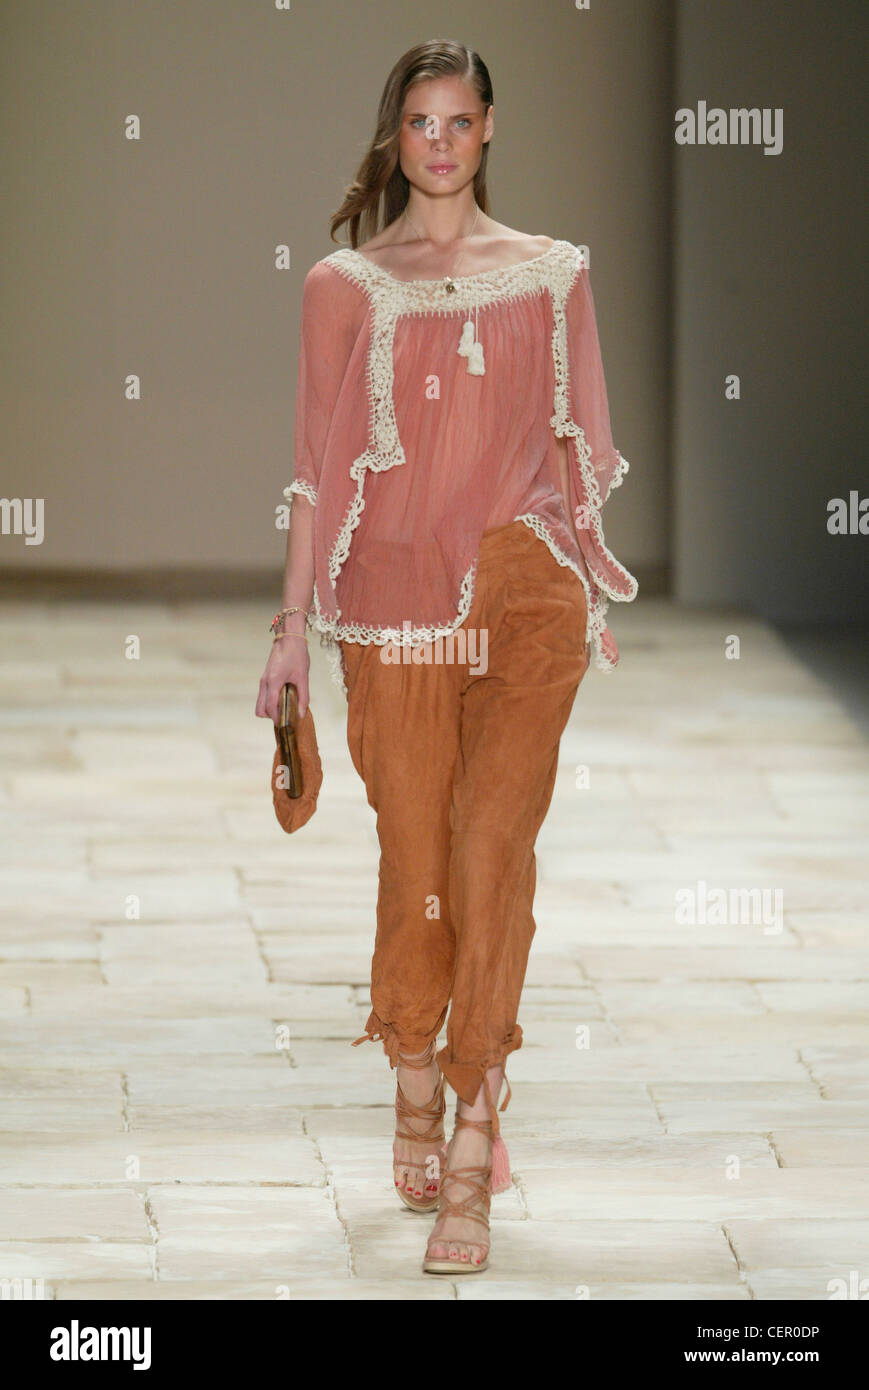 6fa01fa32b12 Givenchy Paris Ready to Wear Spring Summer Model long brunette hair and red  nail polish on